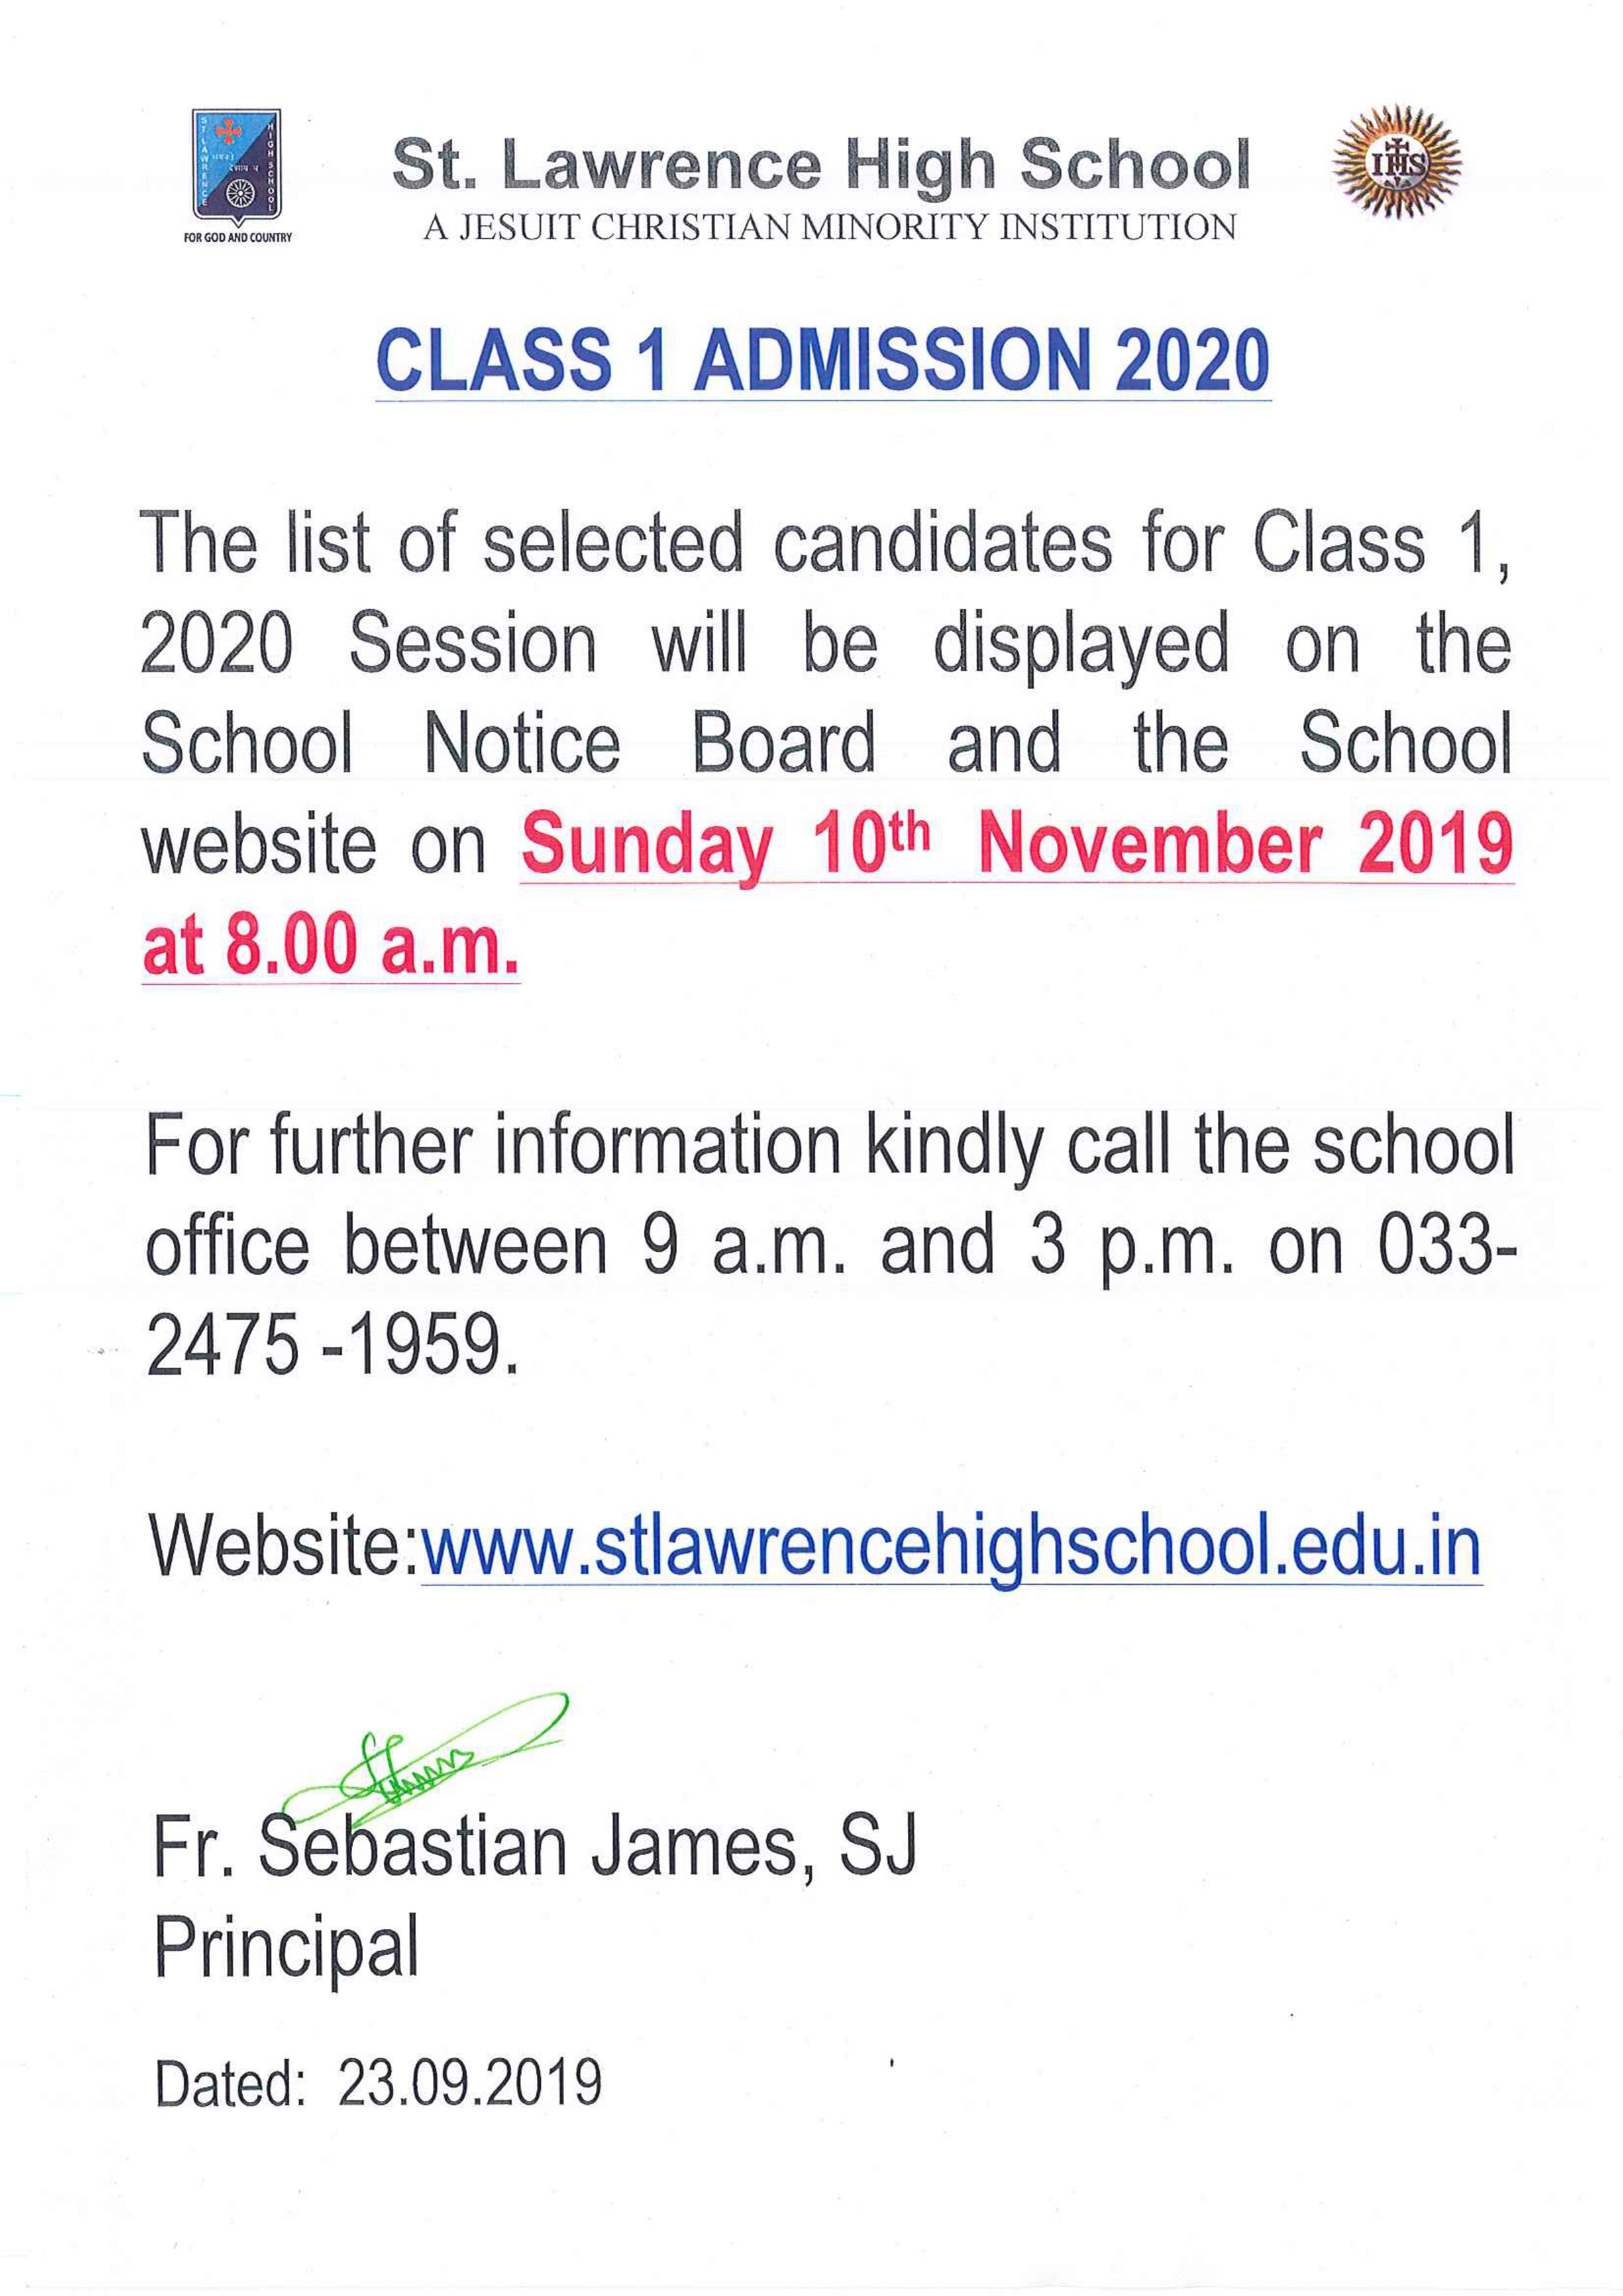 NOTICE FOR CLASS 1 ADMISSION - 2020